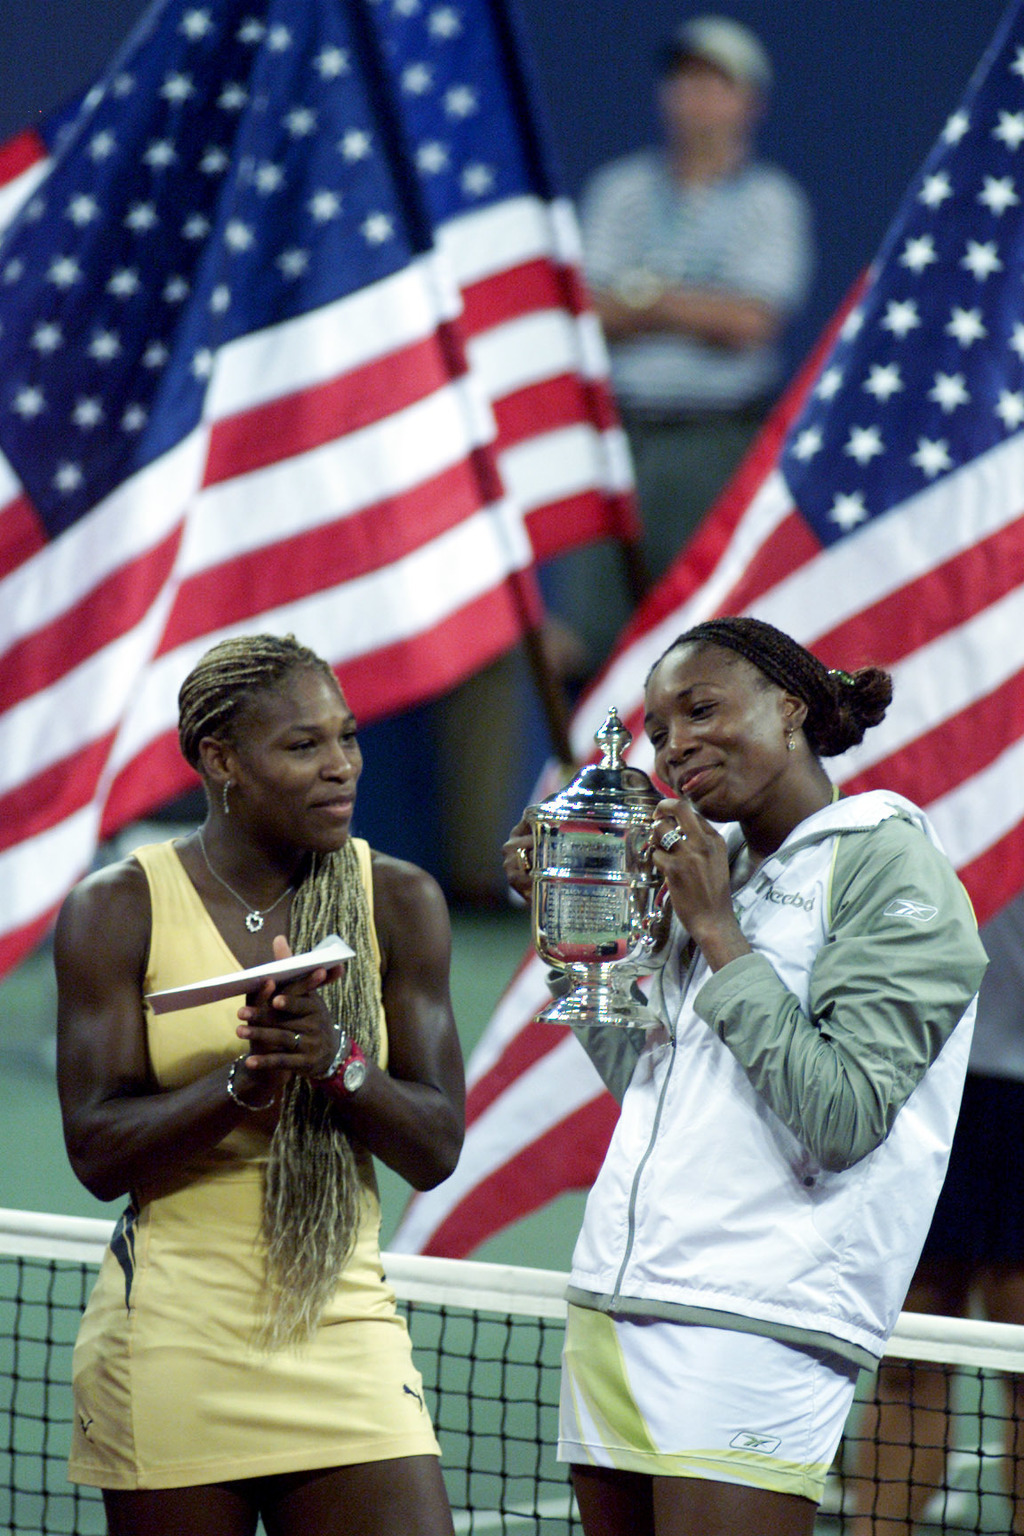 File-This Sept. 8, 2001, file photo shows Venus Williams admiring her trophy as sister Serena, left, looks on after Venus won the final of the US Open...